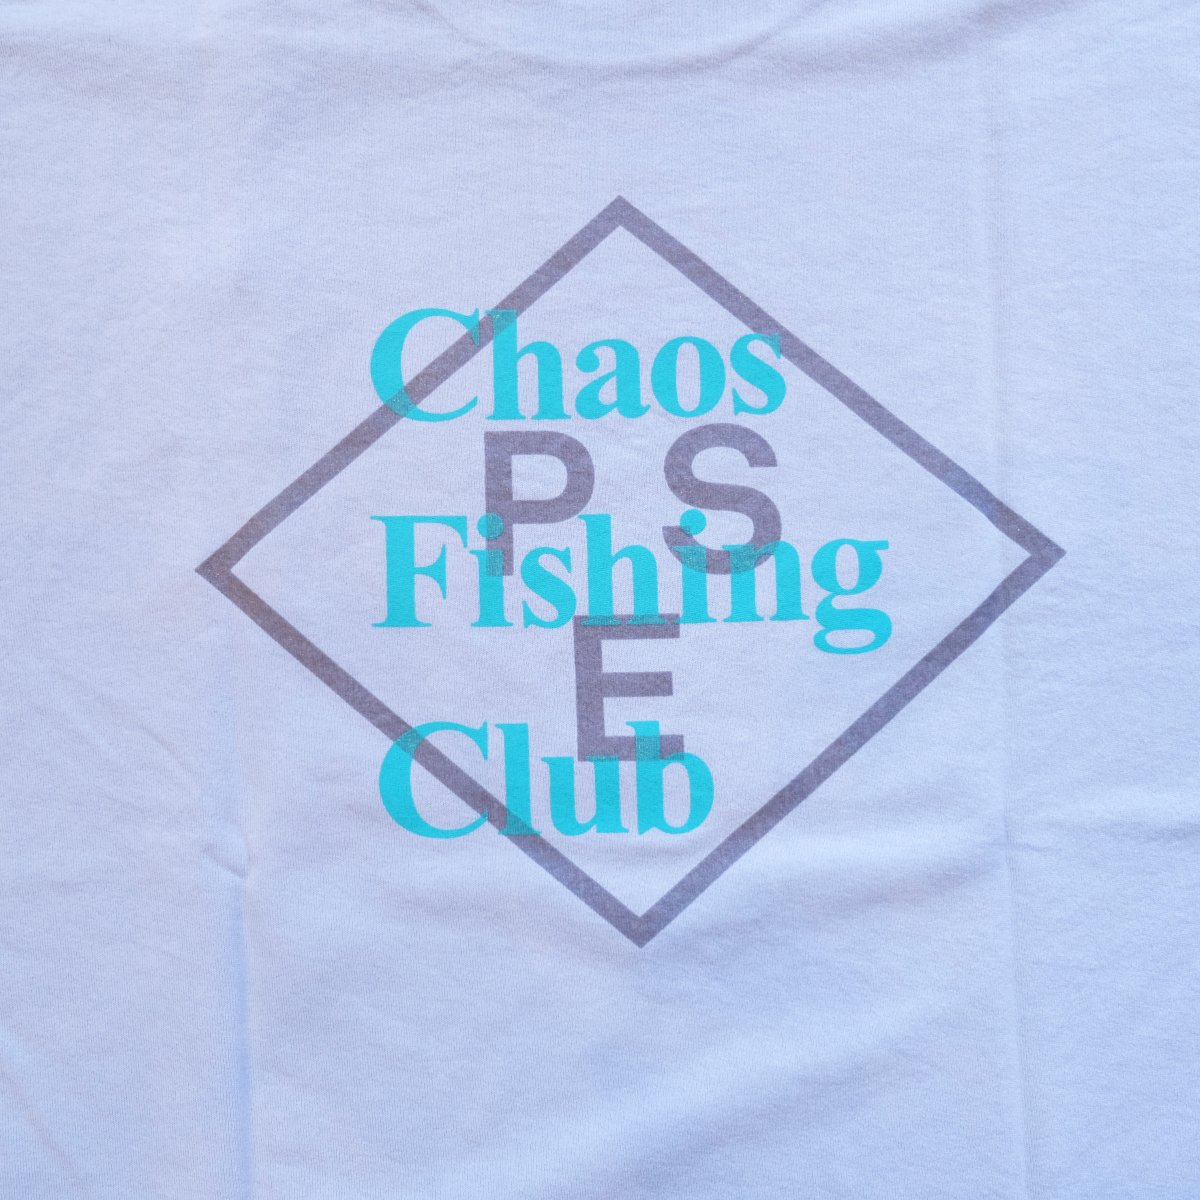 <img class='new_mark_img1' src='https://img.shop-pro.jp/img/new/icons3.gif' style='border:none;display:inline;margin:0px;padding:0px;width:auto;' />PSEUDOS × CHAOS FISHING CLUB / シュードス /  Tシャツ PRINTED PAPER T-SHIRT SS 【L・BLUE】